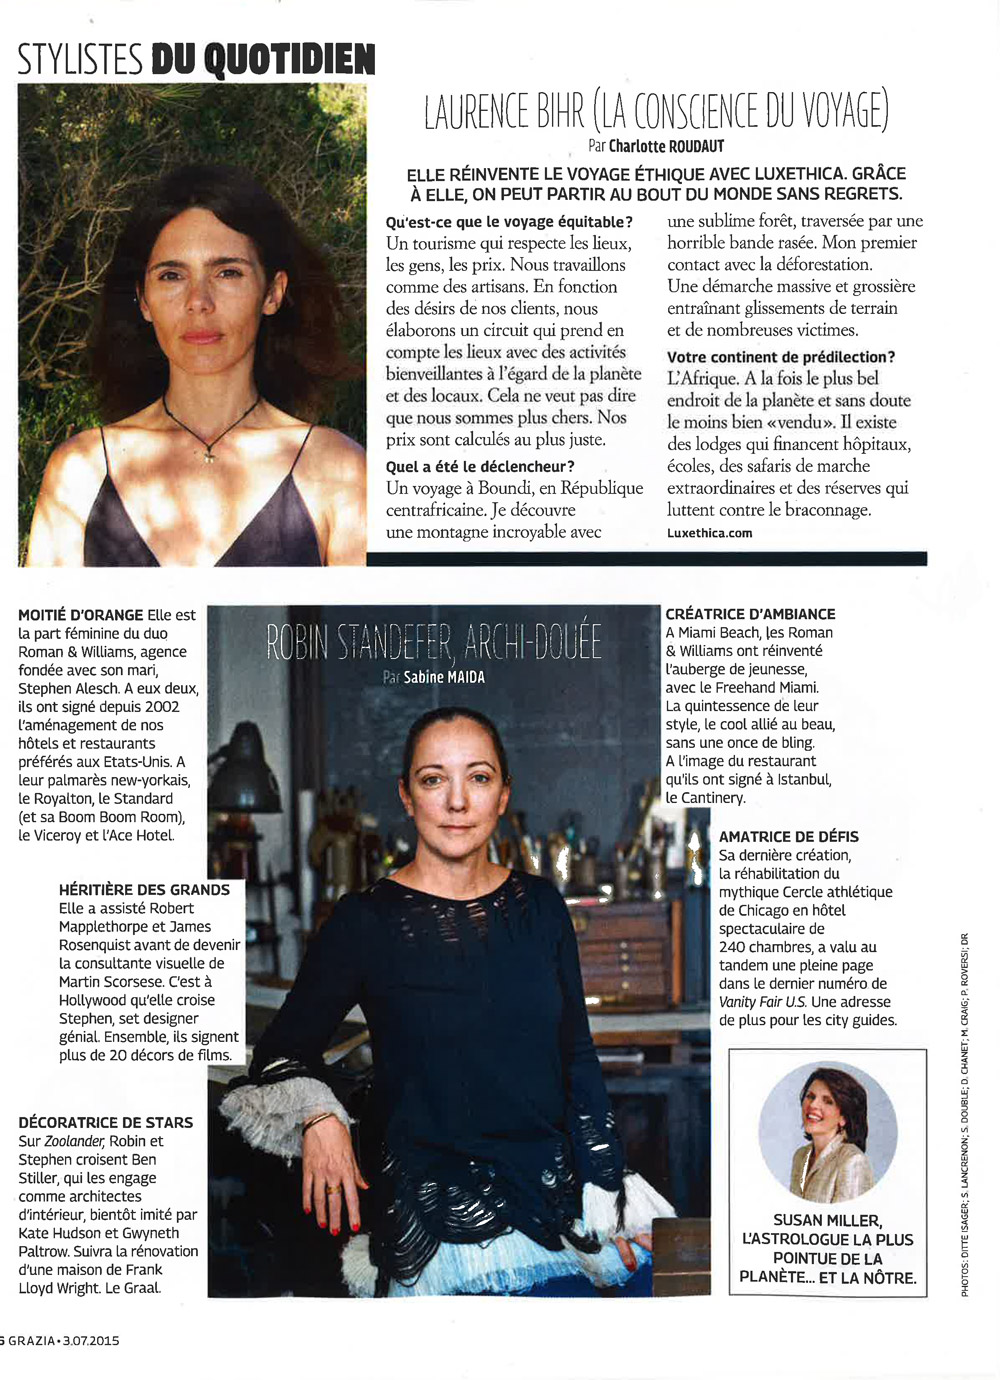 Grazia-article_p1.jpg